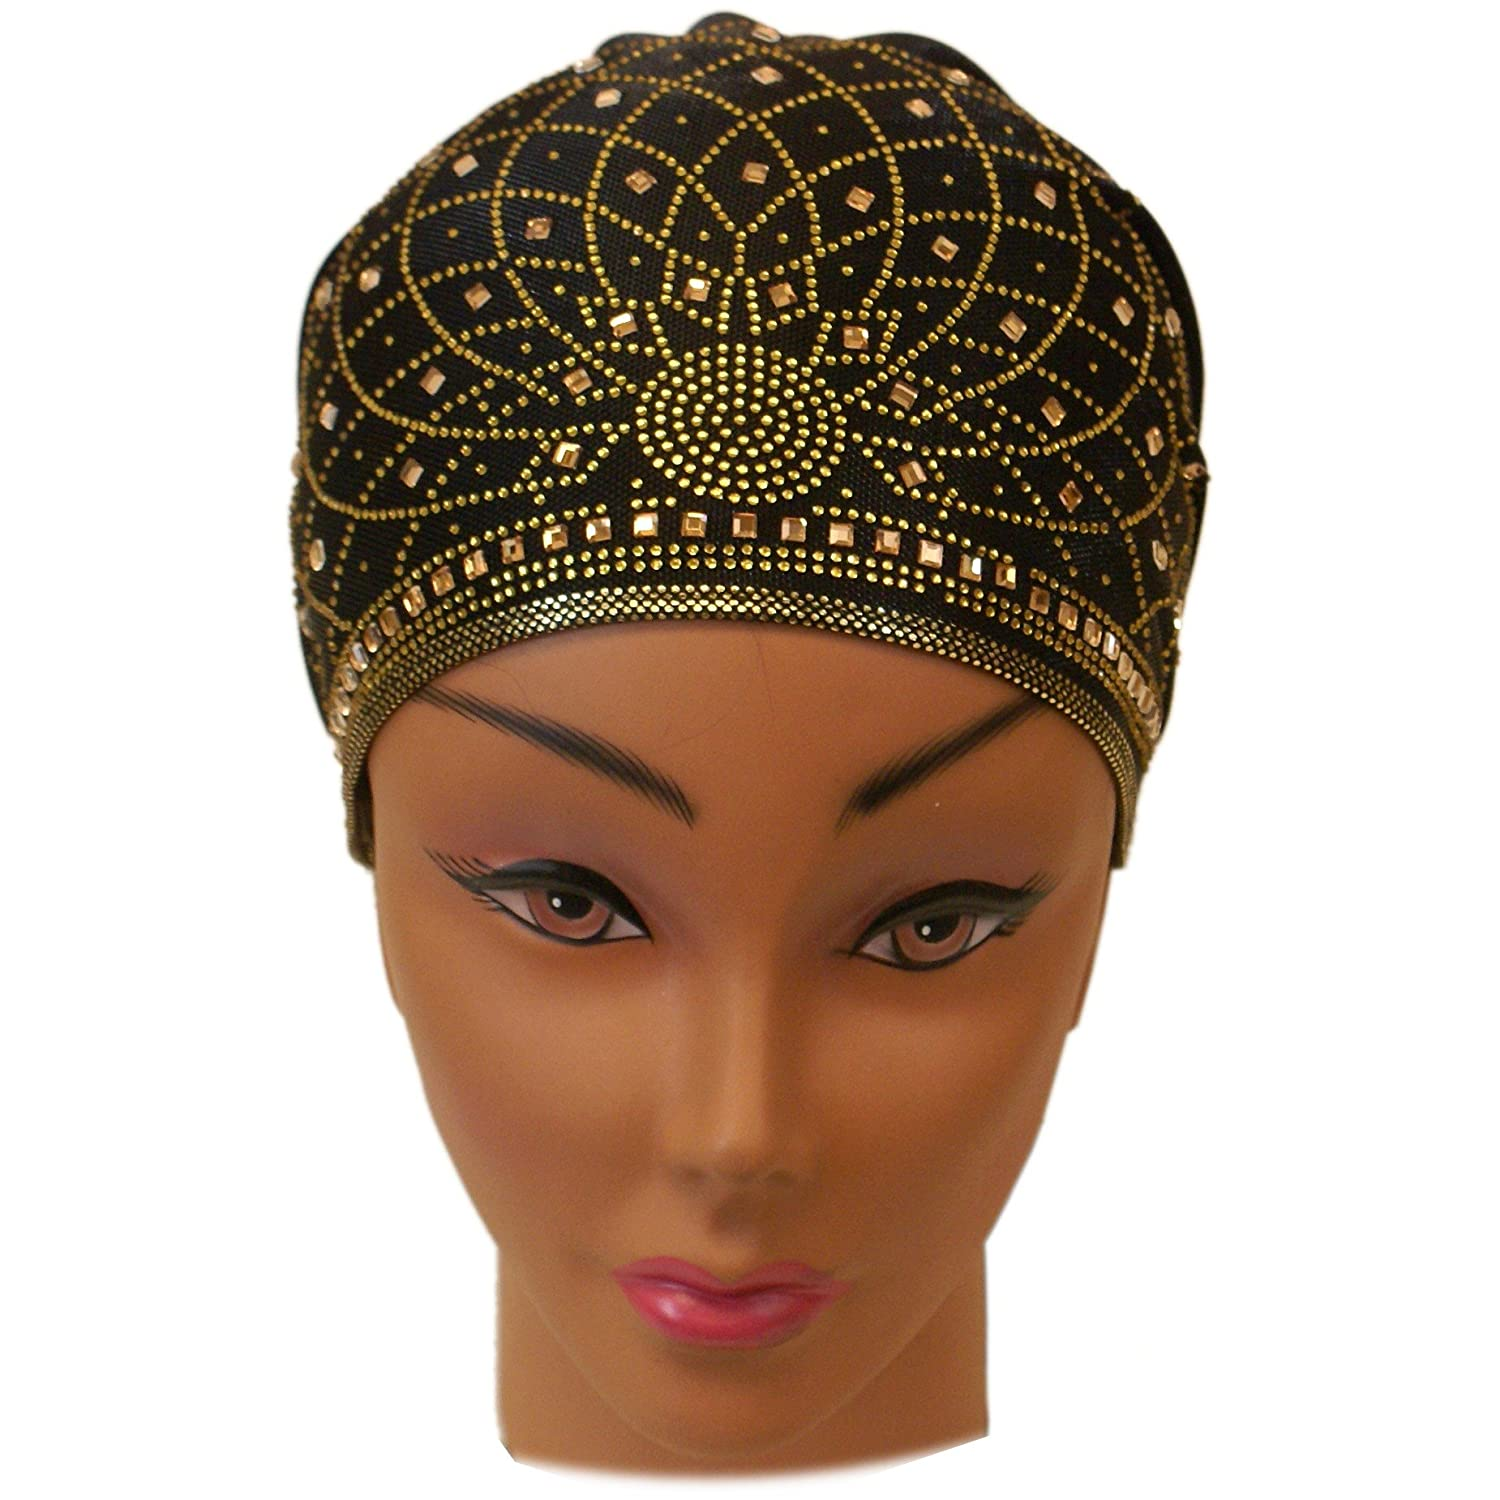 Retro Vintage Style Hats SSK Beautiful Metallic Turban-style Head Wrap $13.98 AT vintagedancer.com